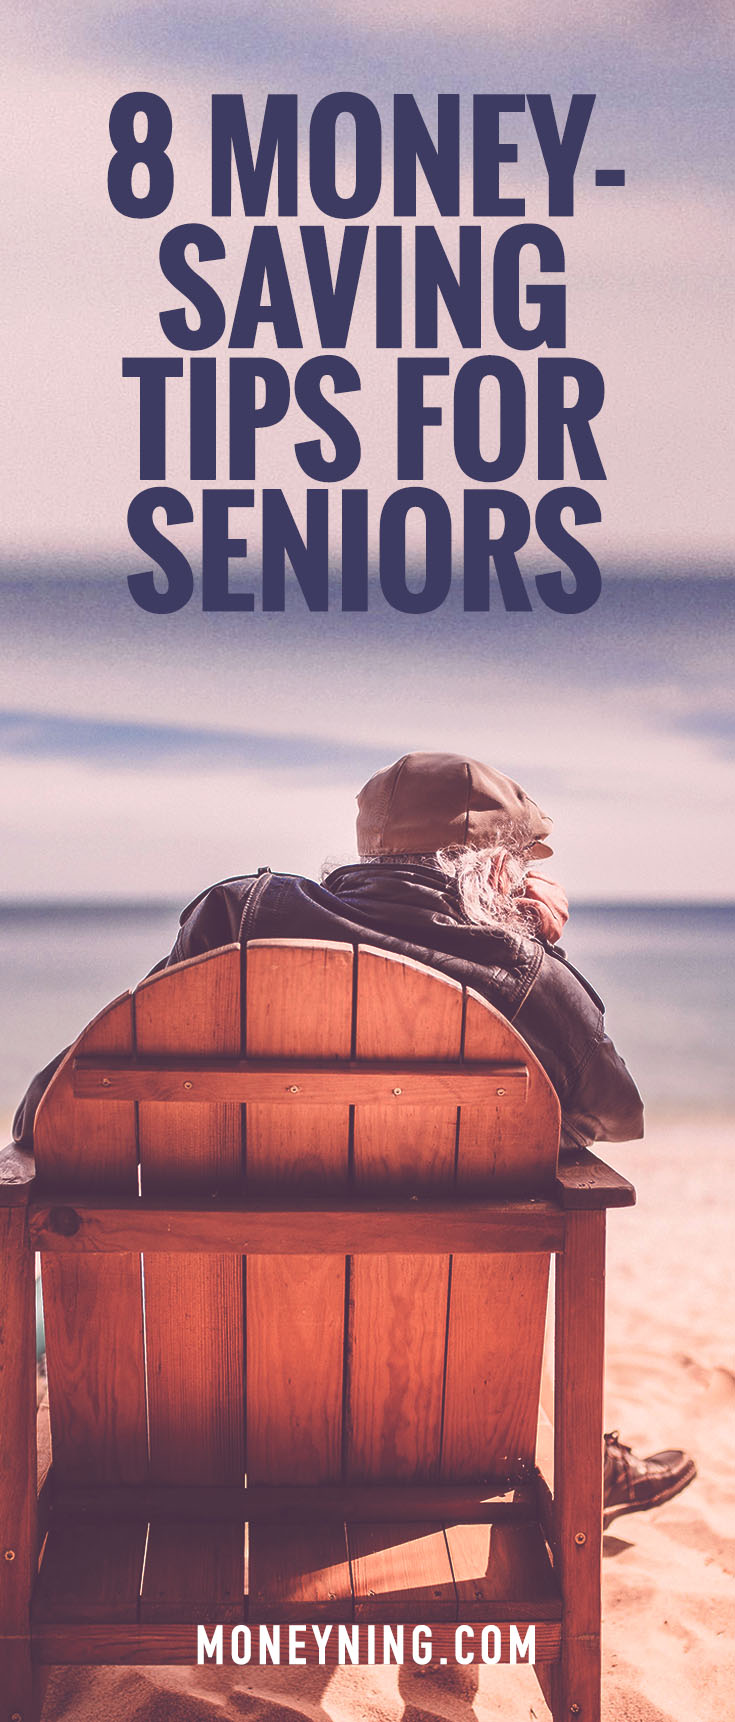 money-saving for seniors